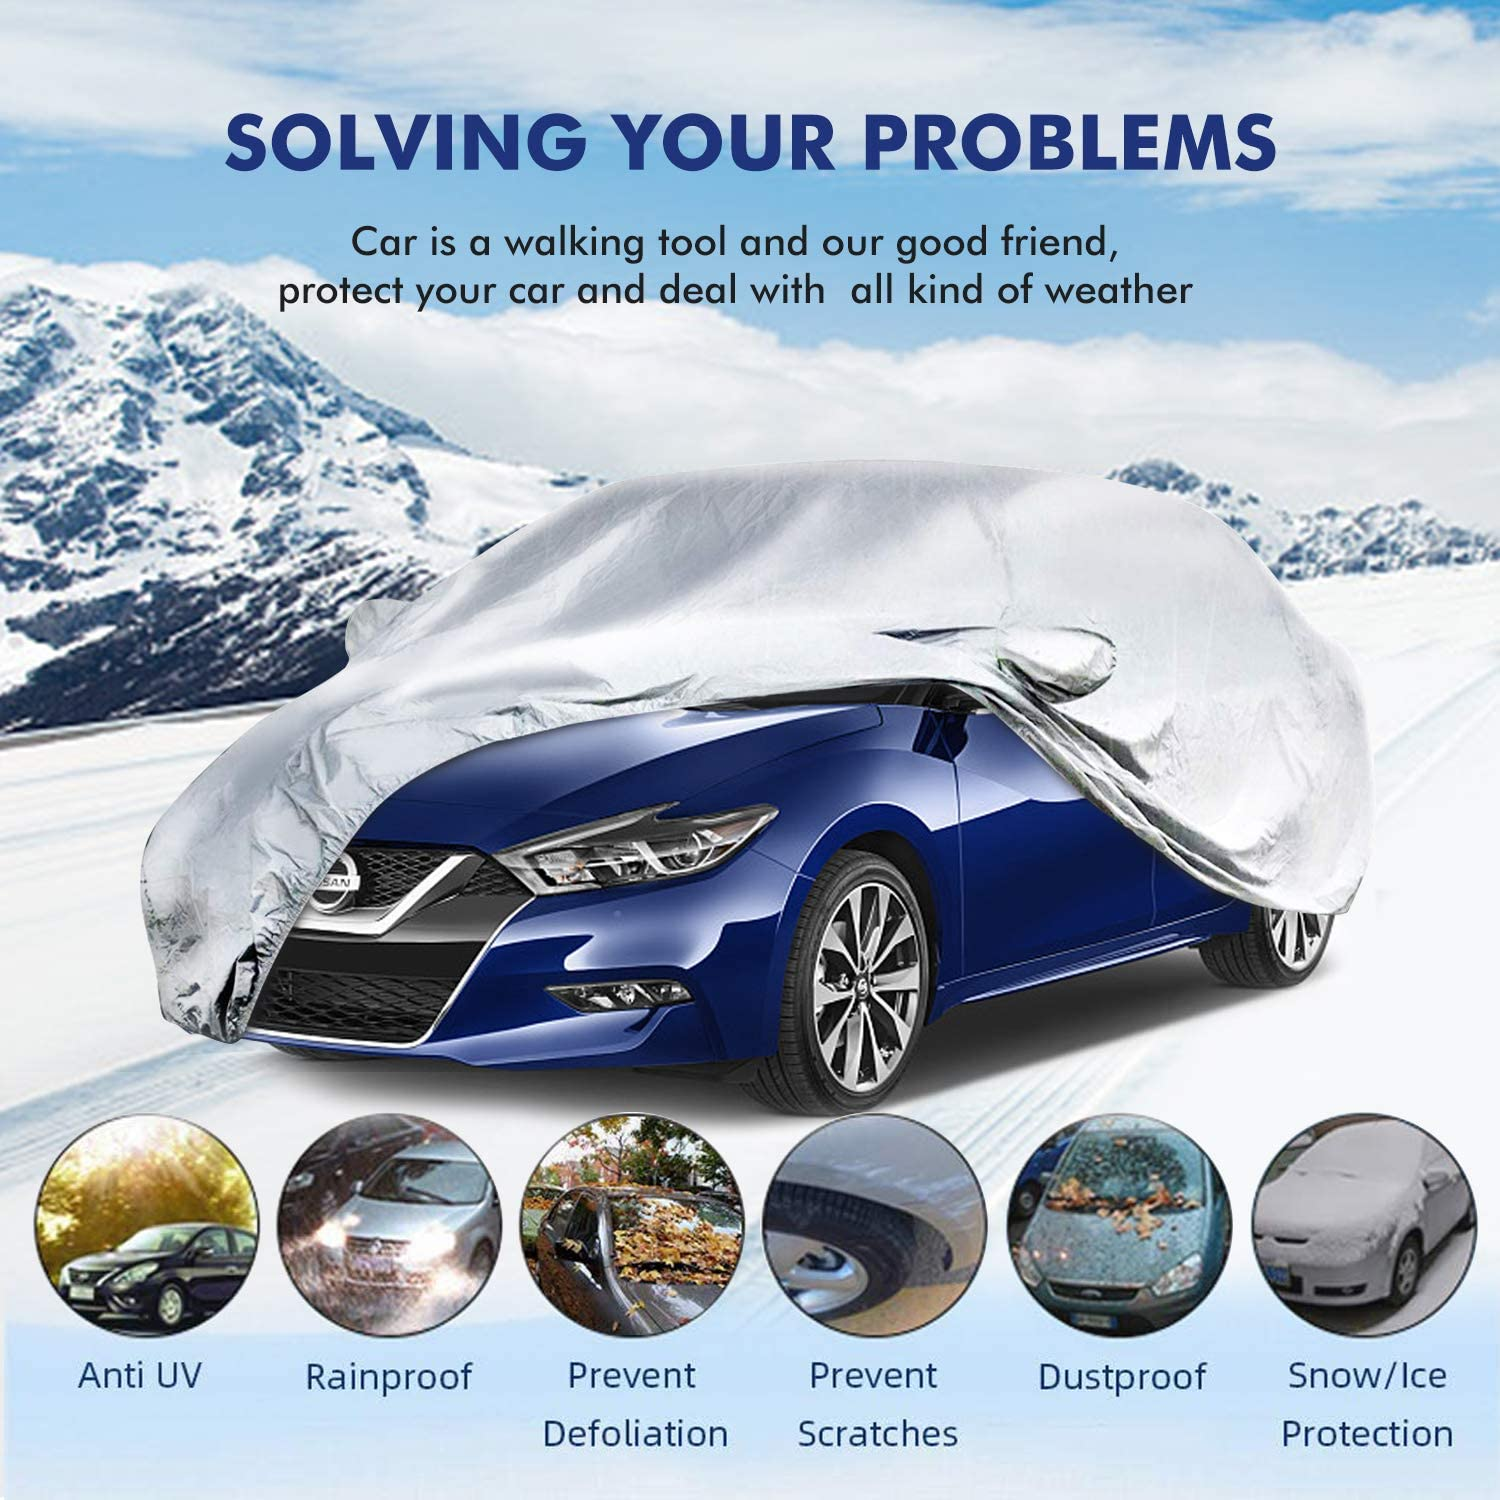 6-Layer Breathable UV Protection Waterproof//Windproof//Snowproof//Scratch Resistant Universal Fit Full Car Covers for Sedan Wagon All Weather Use TABIGER Car Cover 191 L x 76 W x 56 H